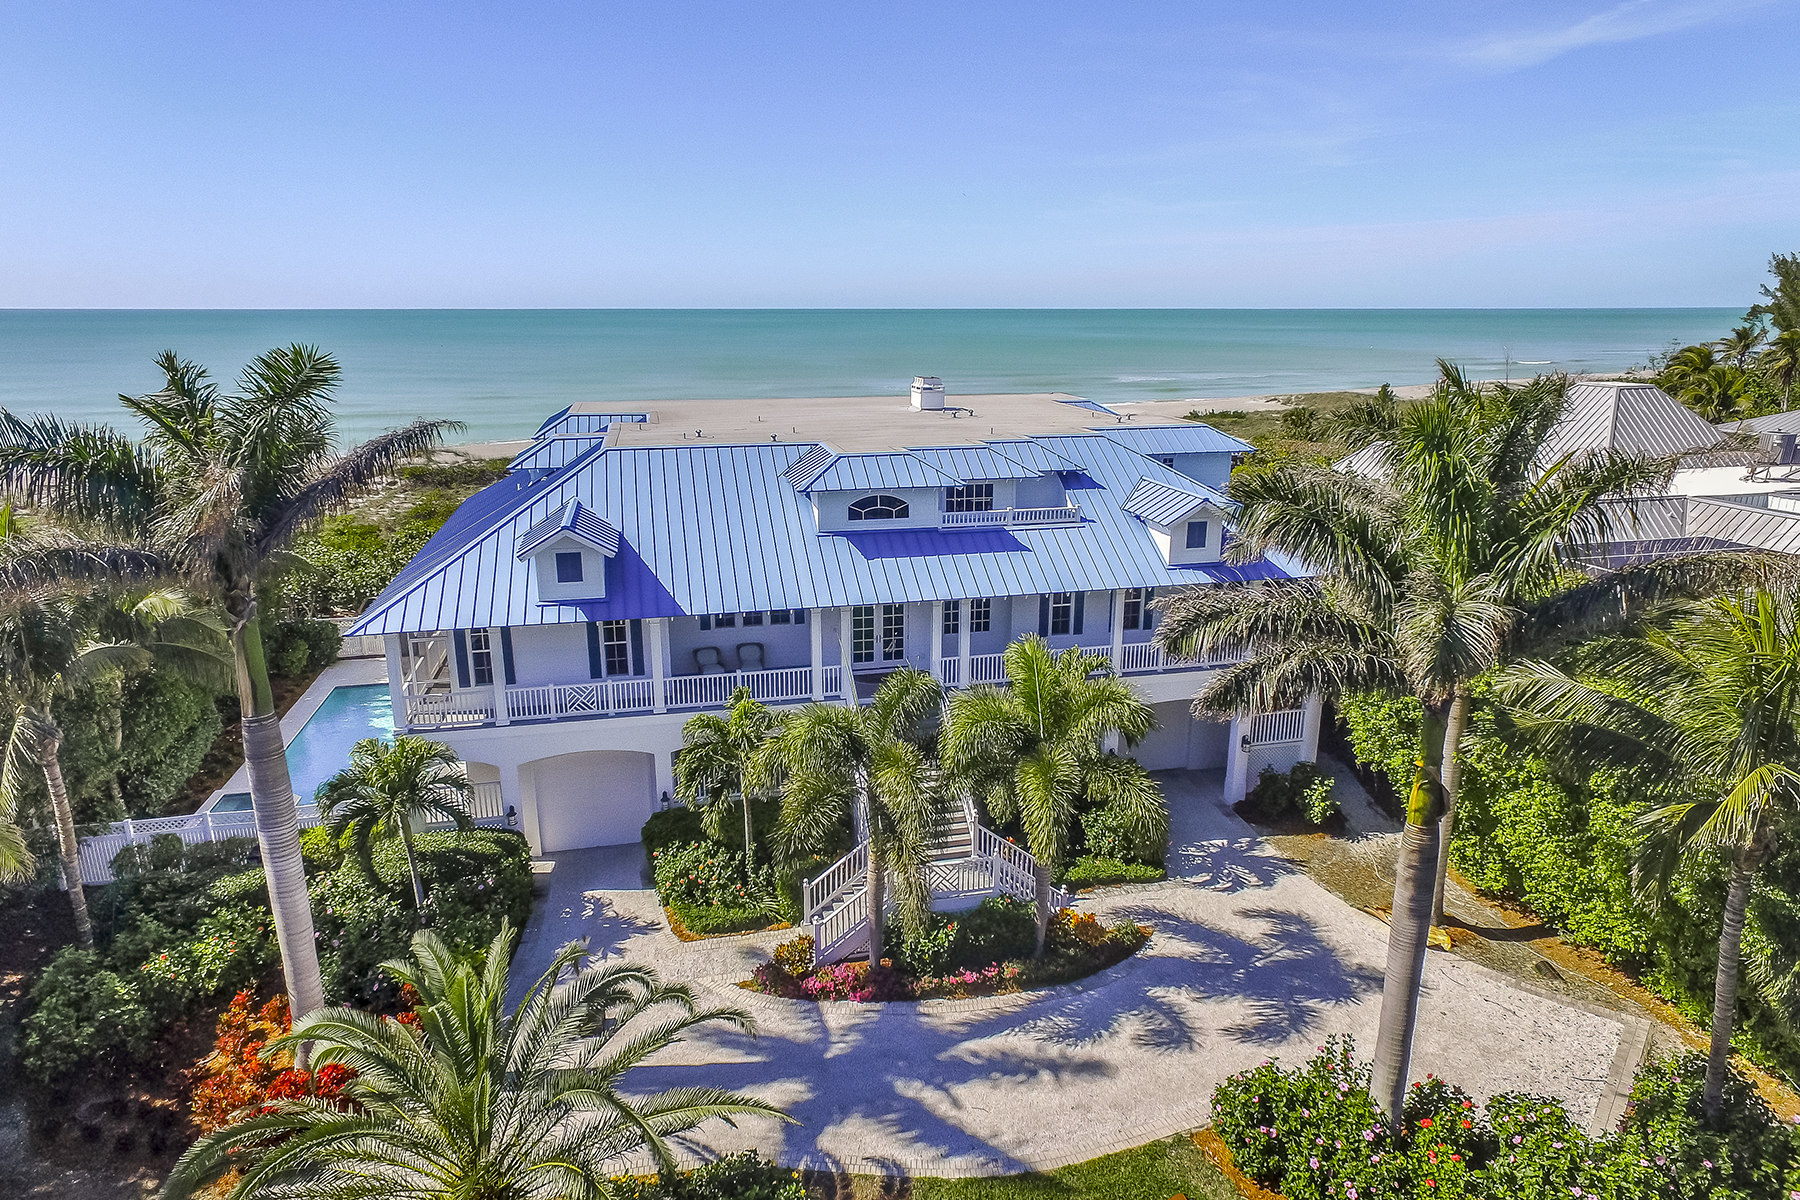 Single Family Home for Sale at 17030 Captiva Dr , Captiva, FL 33924 17030 Captiva Dr, Captiva, Florida 33924 United States